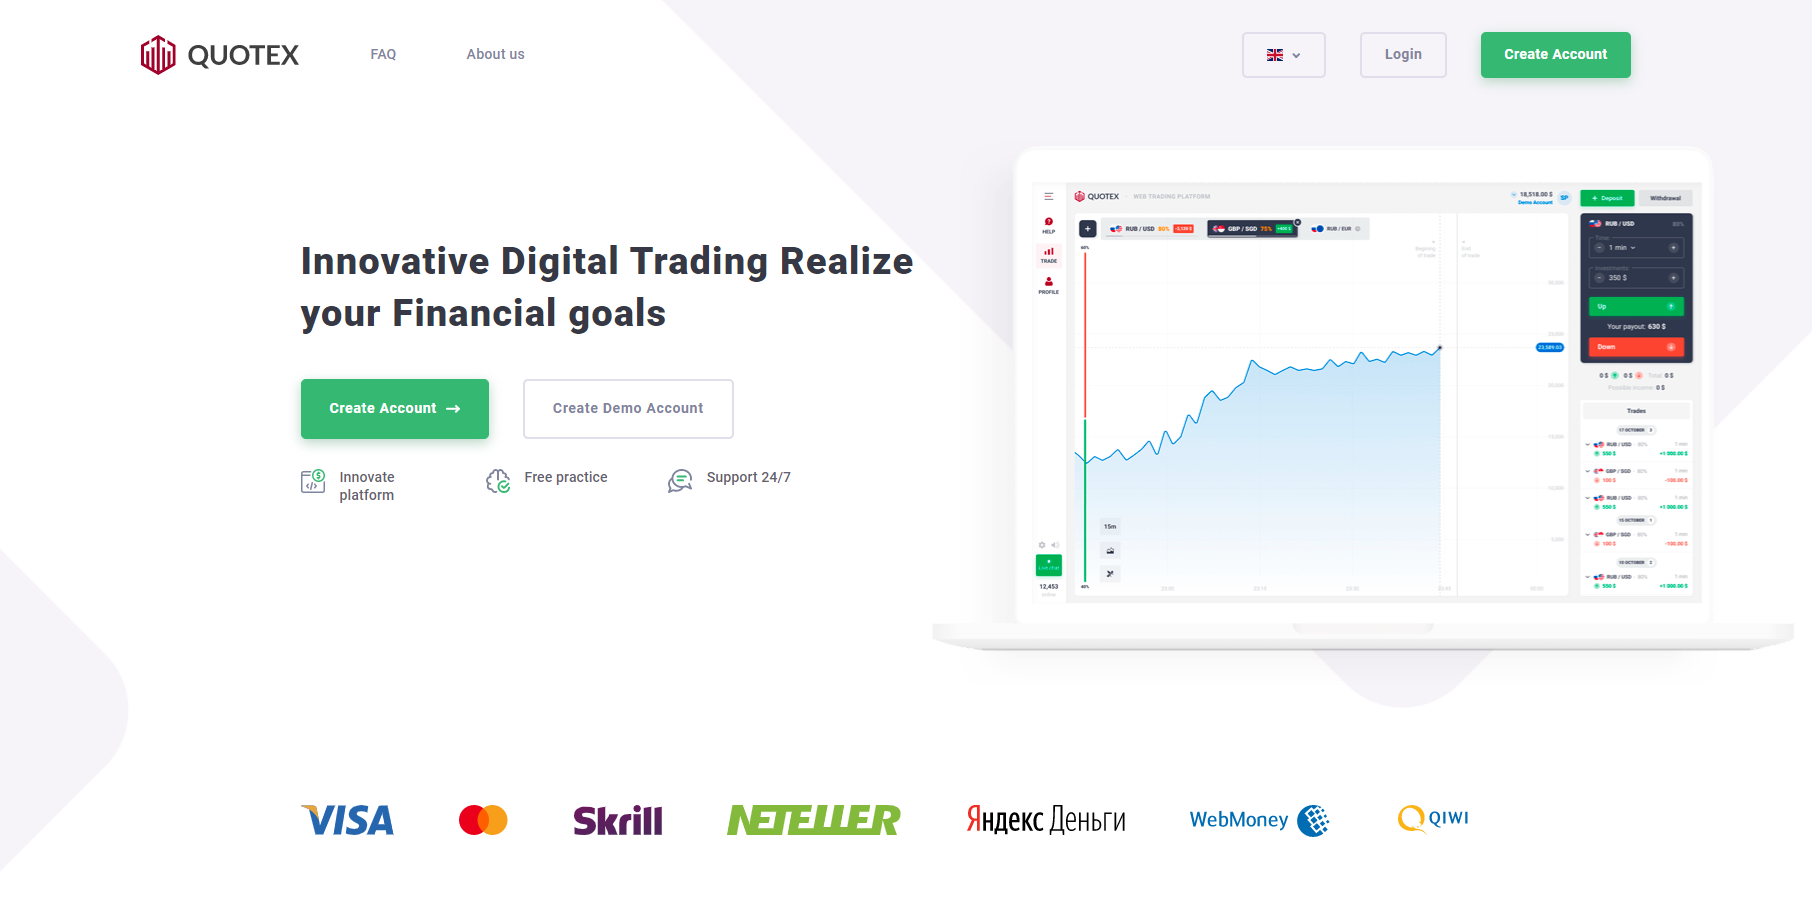 Official website of Quotex